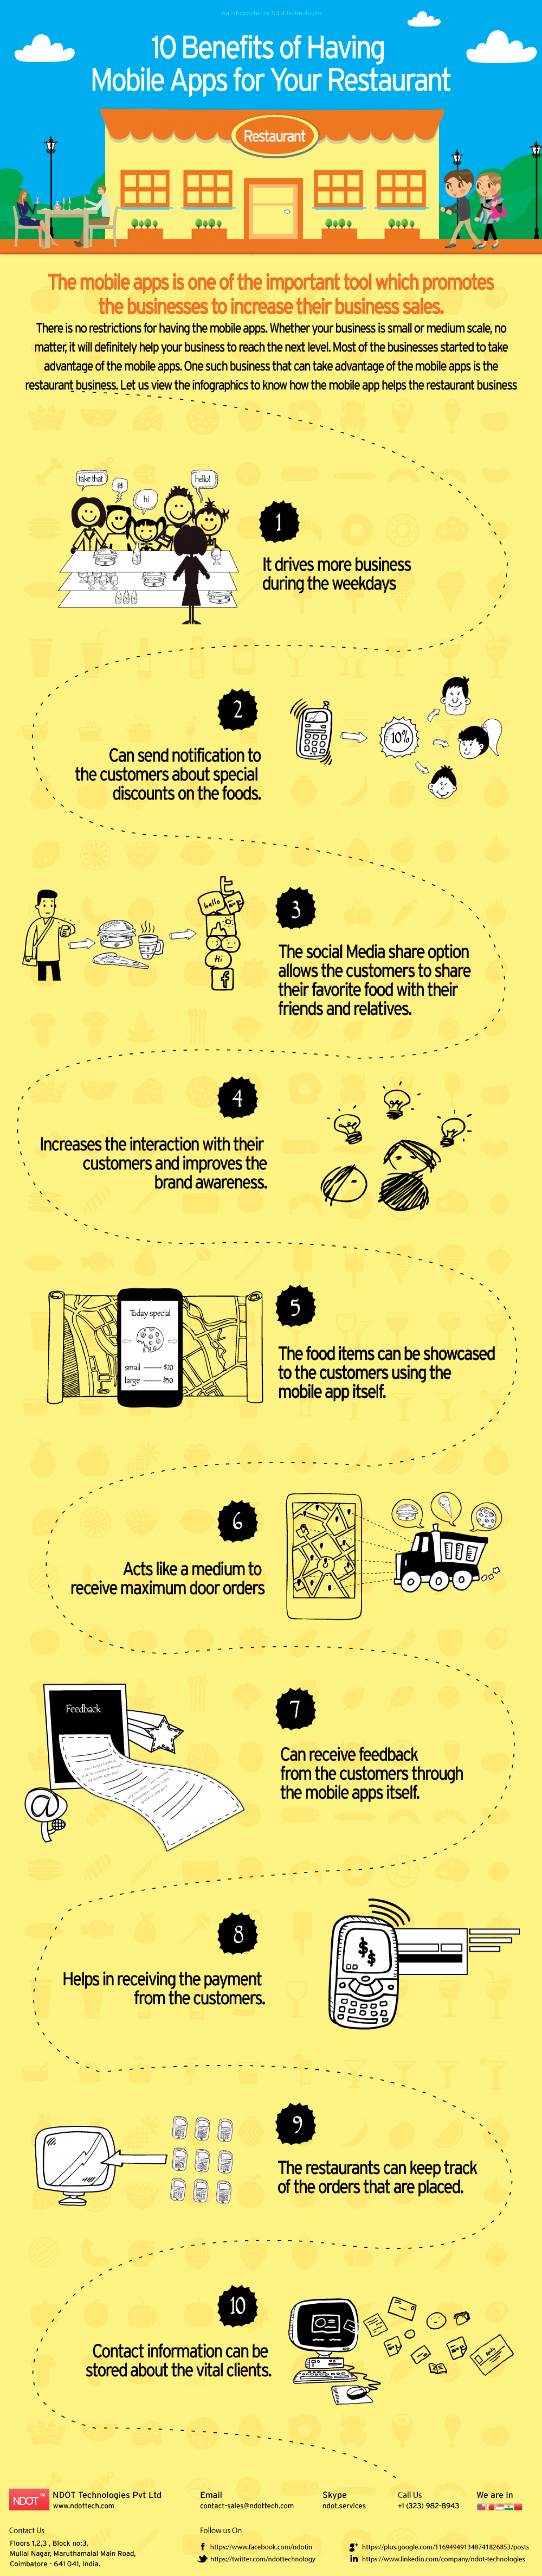 How Mobile Apps Can Benefit Your Restaurant Business Infographic